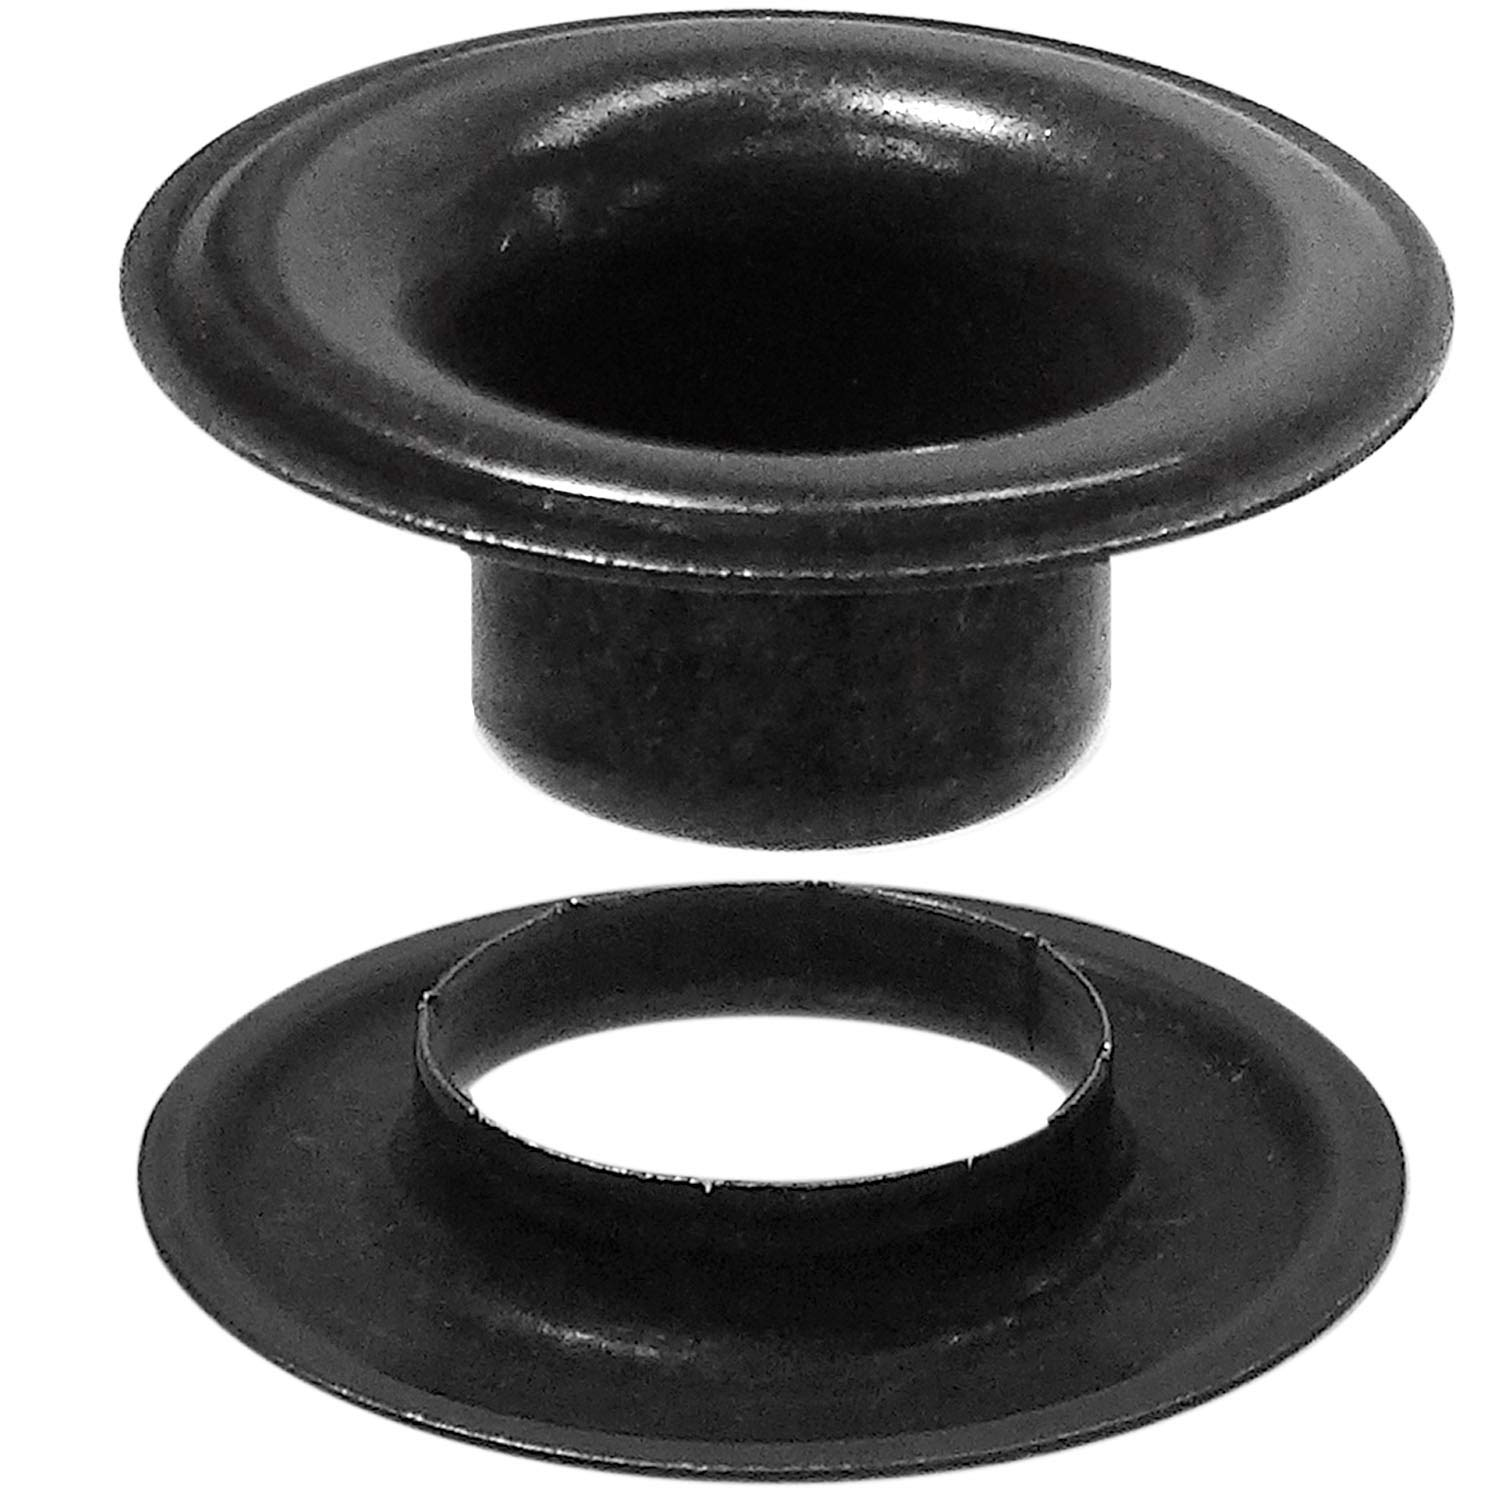 Stimpson Sheet Metal Grommet and Neck Washer Dull Black Chem Durable, Reliable, Heavy-Duty #3 Set (720 Pieces of Each)